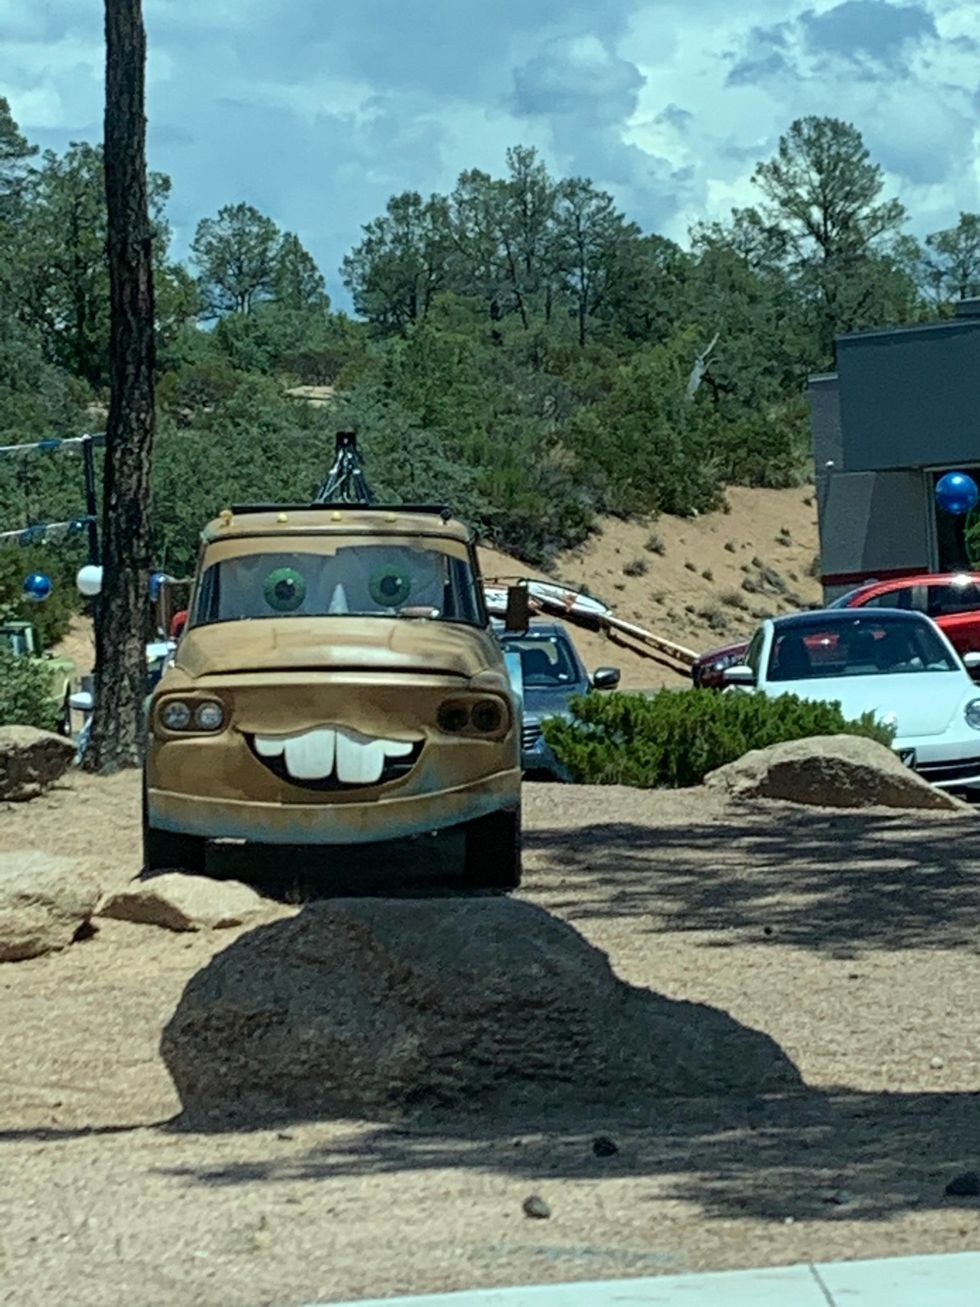 Image of Tow Mater from Cars